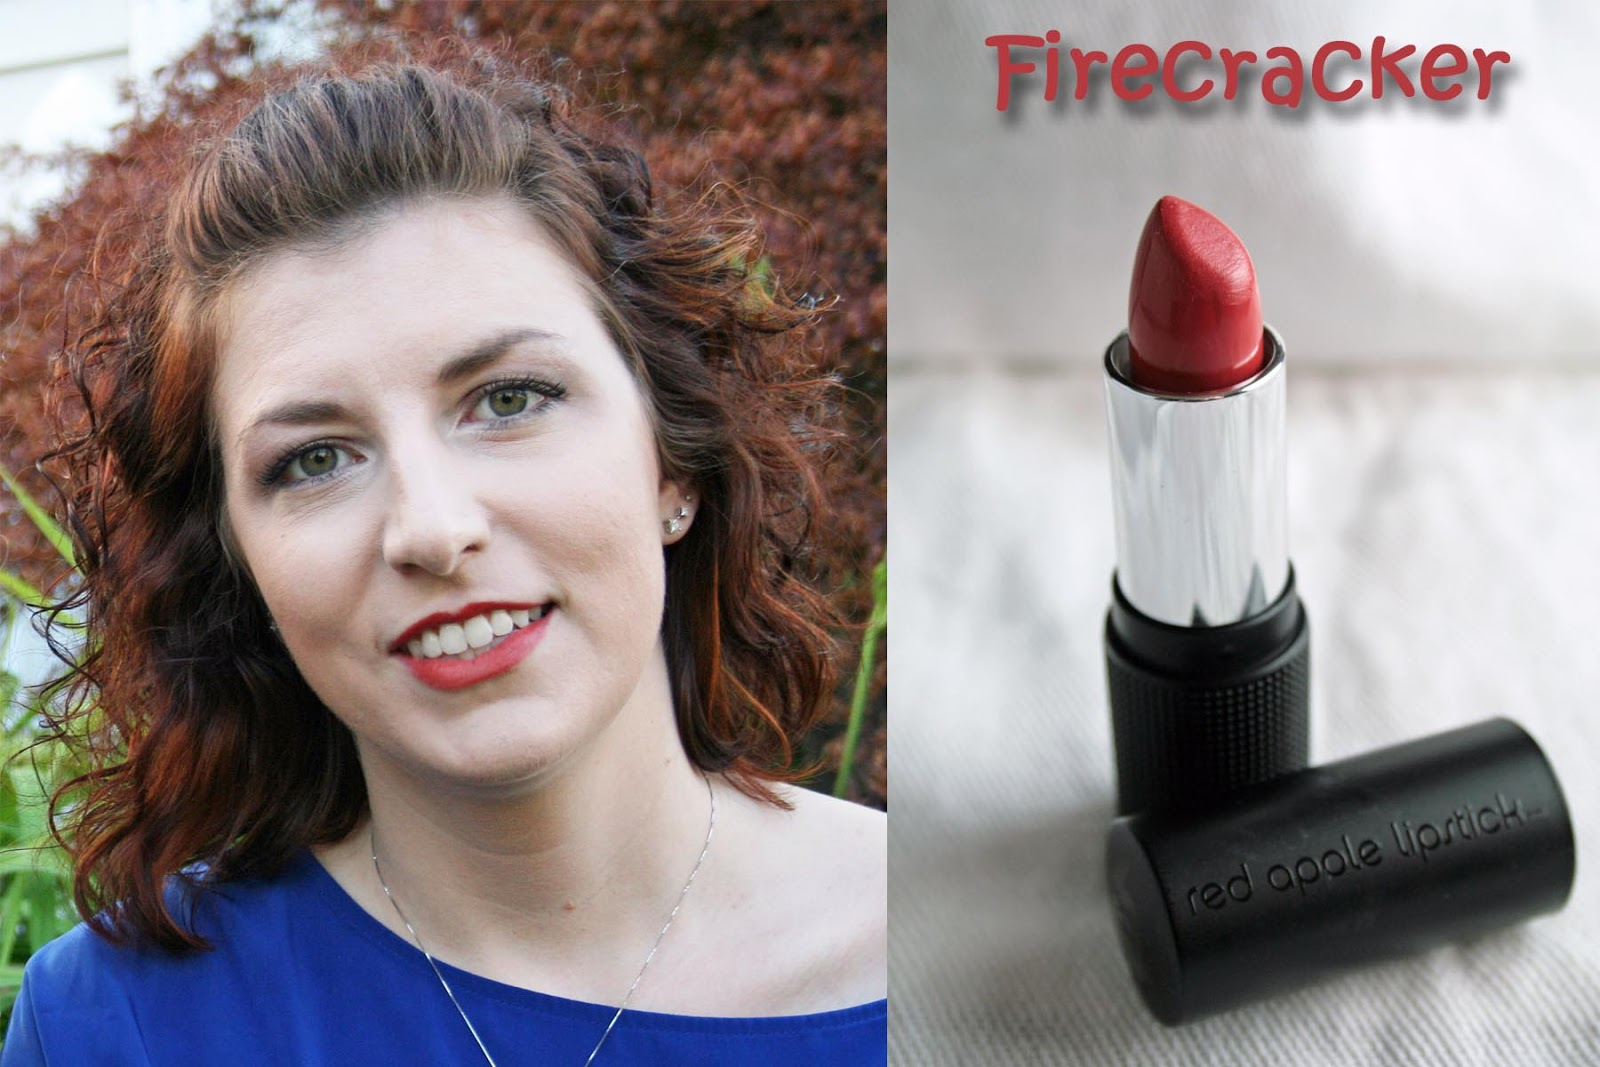 Red apple lipstick is a true leader in the industry, offering a slew of cosmetic products that are lead free, paraben free, gluten free, animal parts free, soy free and so much more. Shop for luxurious cosmetics that are not only safe but also beautiful across categories including lipstick, glosses, mascara, eye shadows and more at red apple.